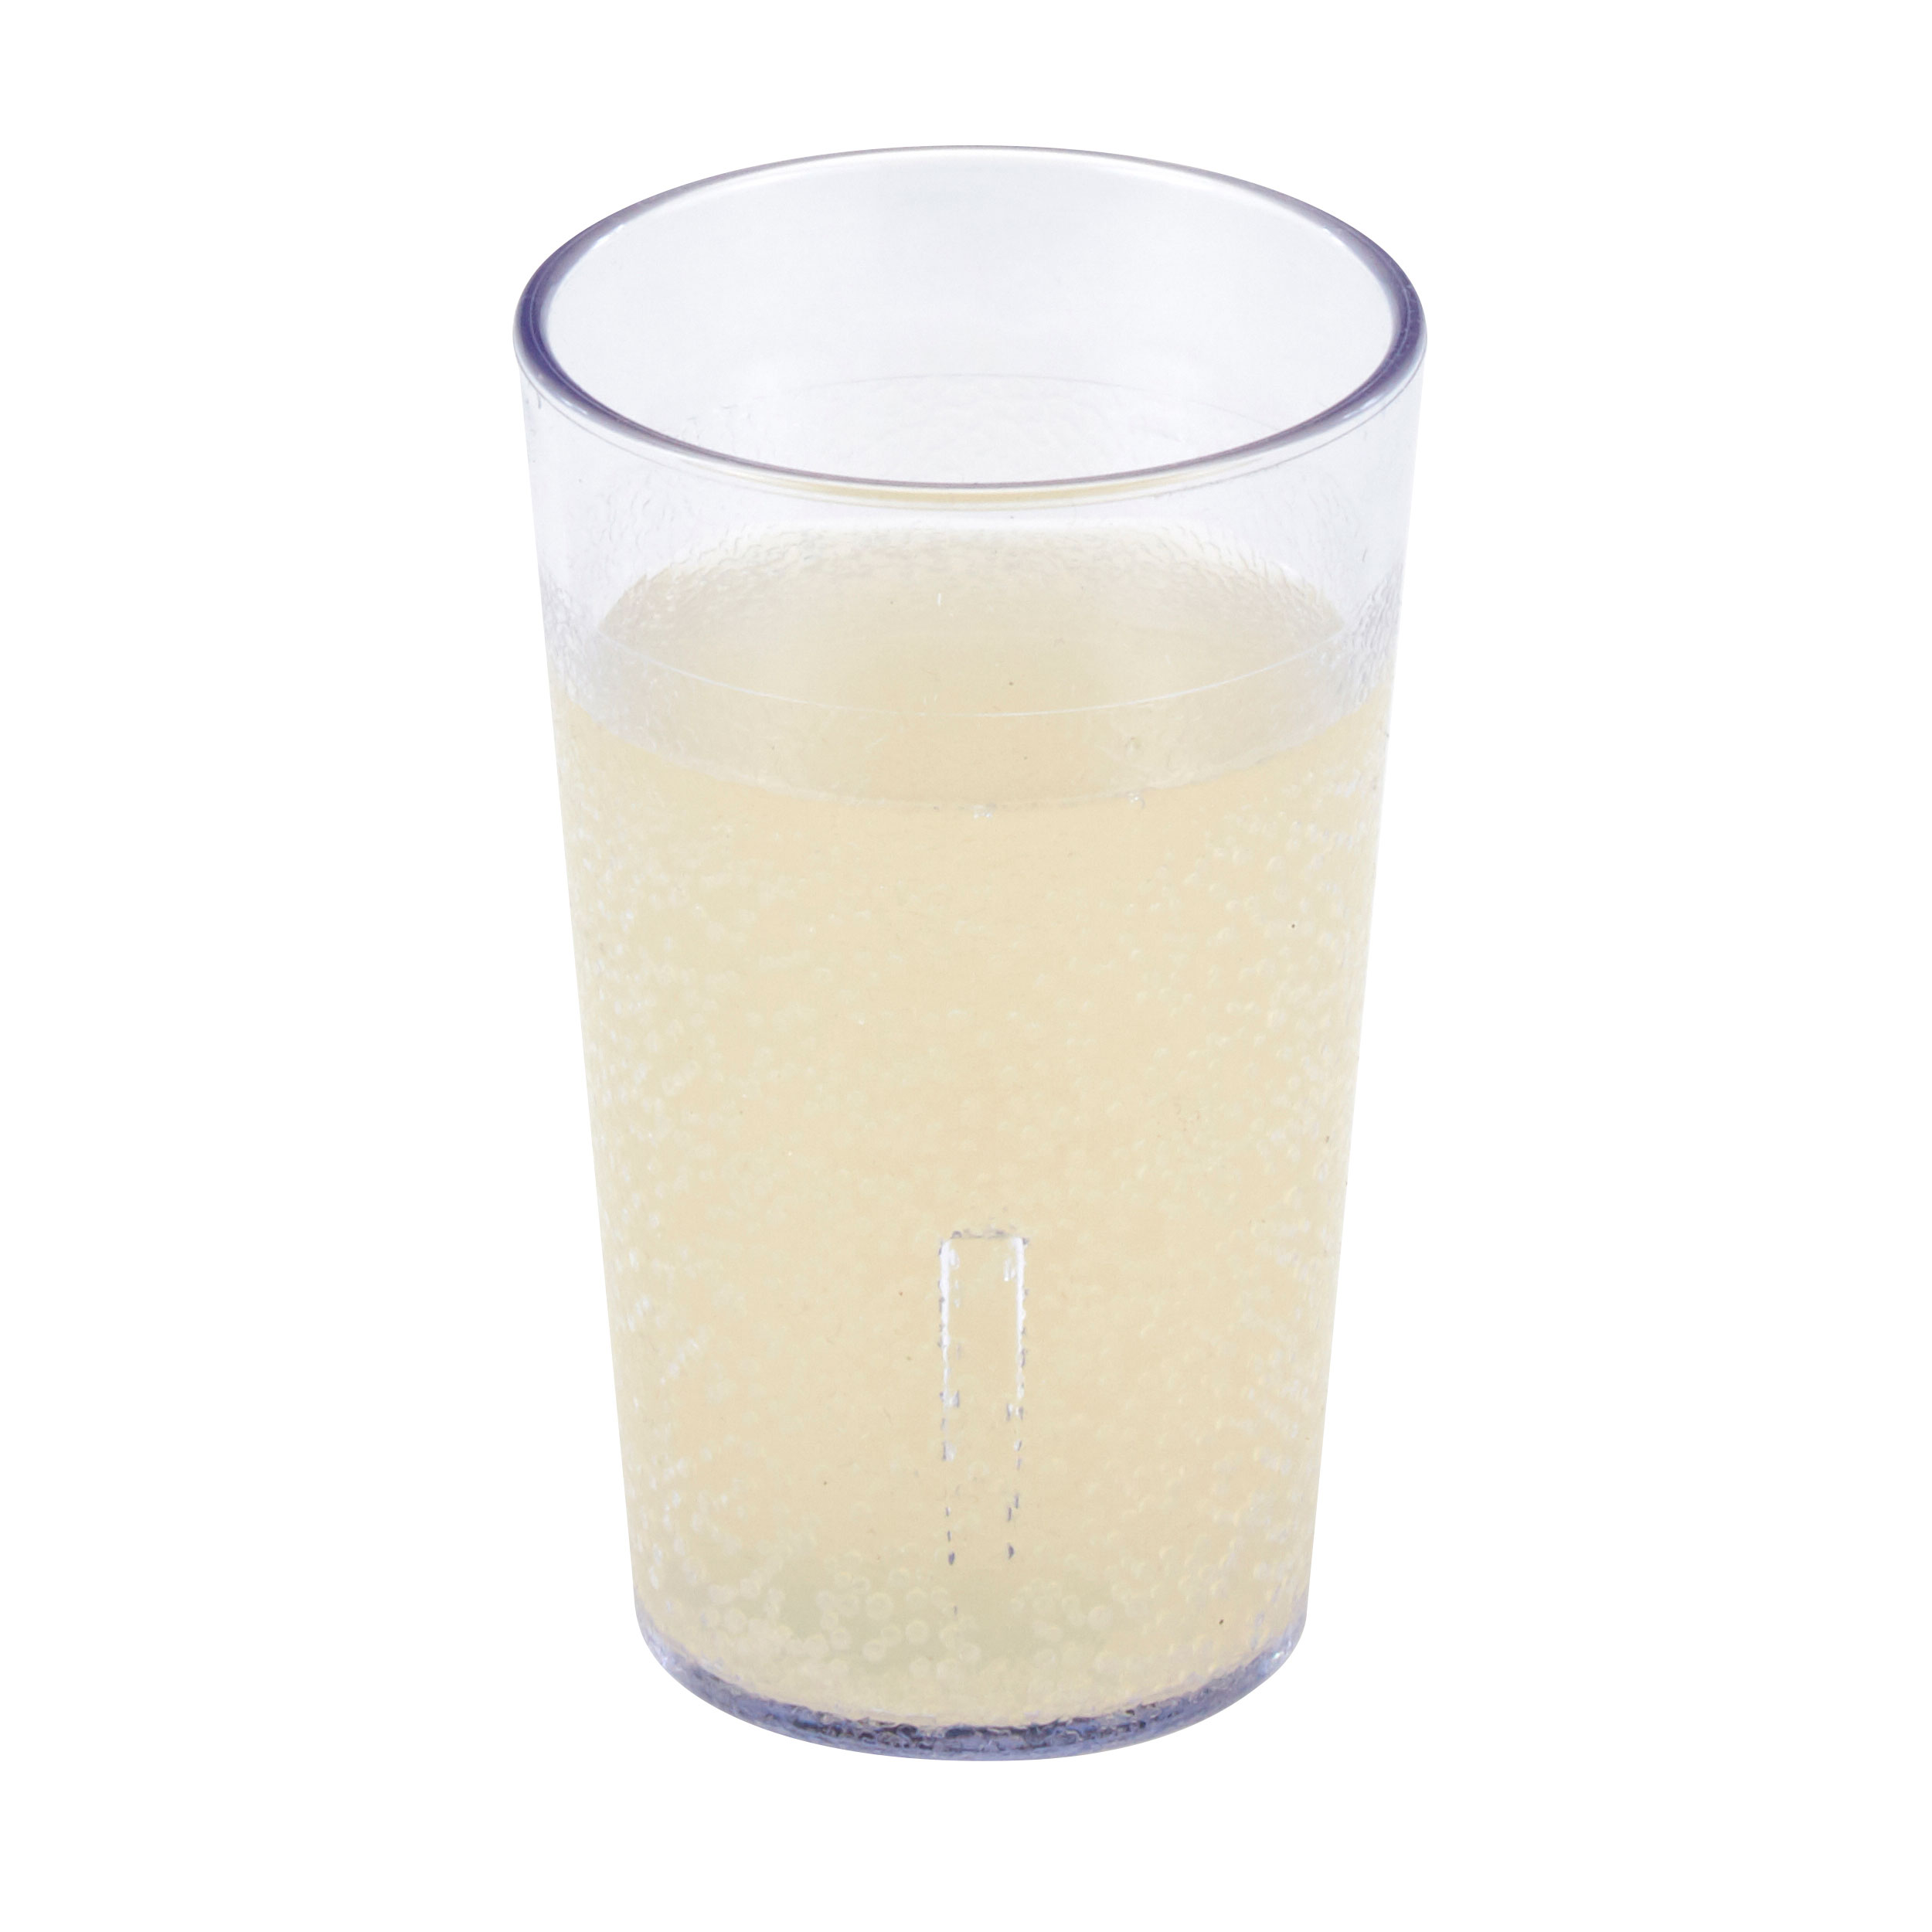 Cambro 500P152 serving/drinking glasses